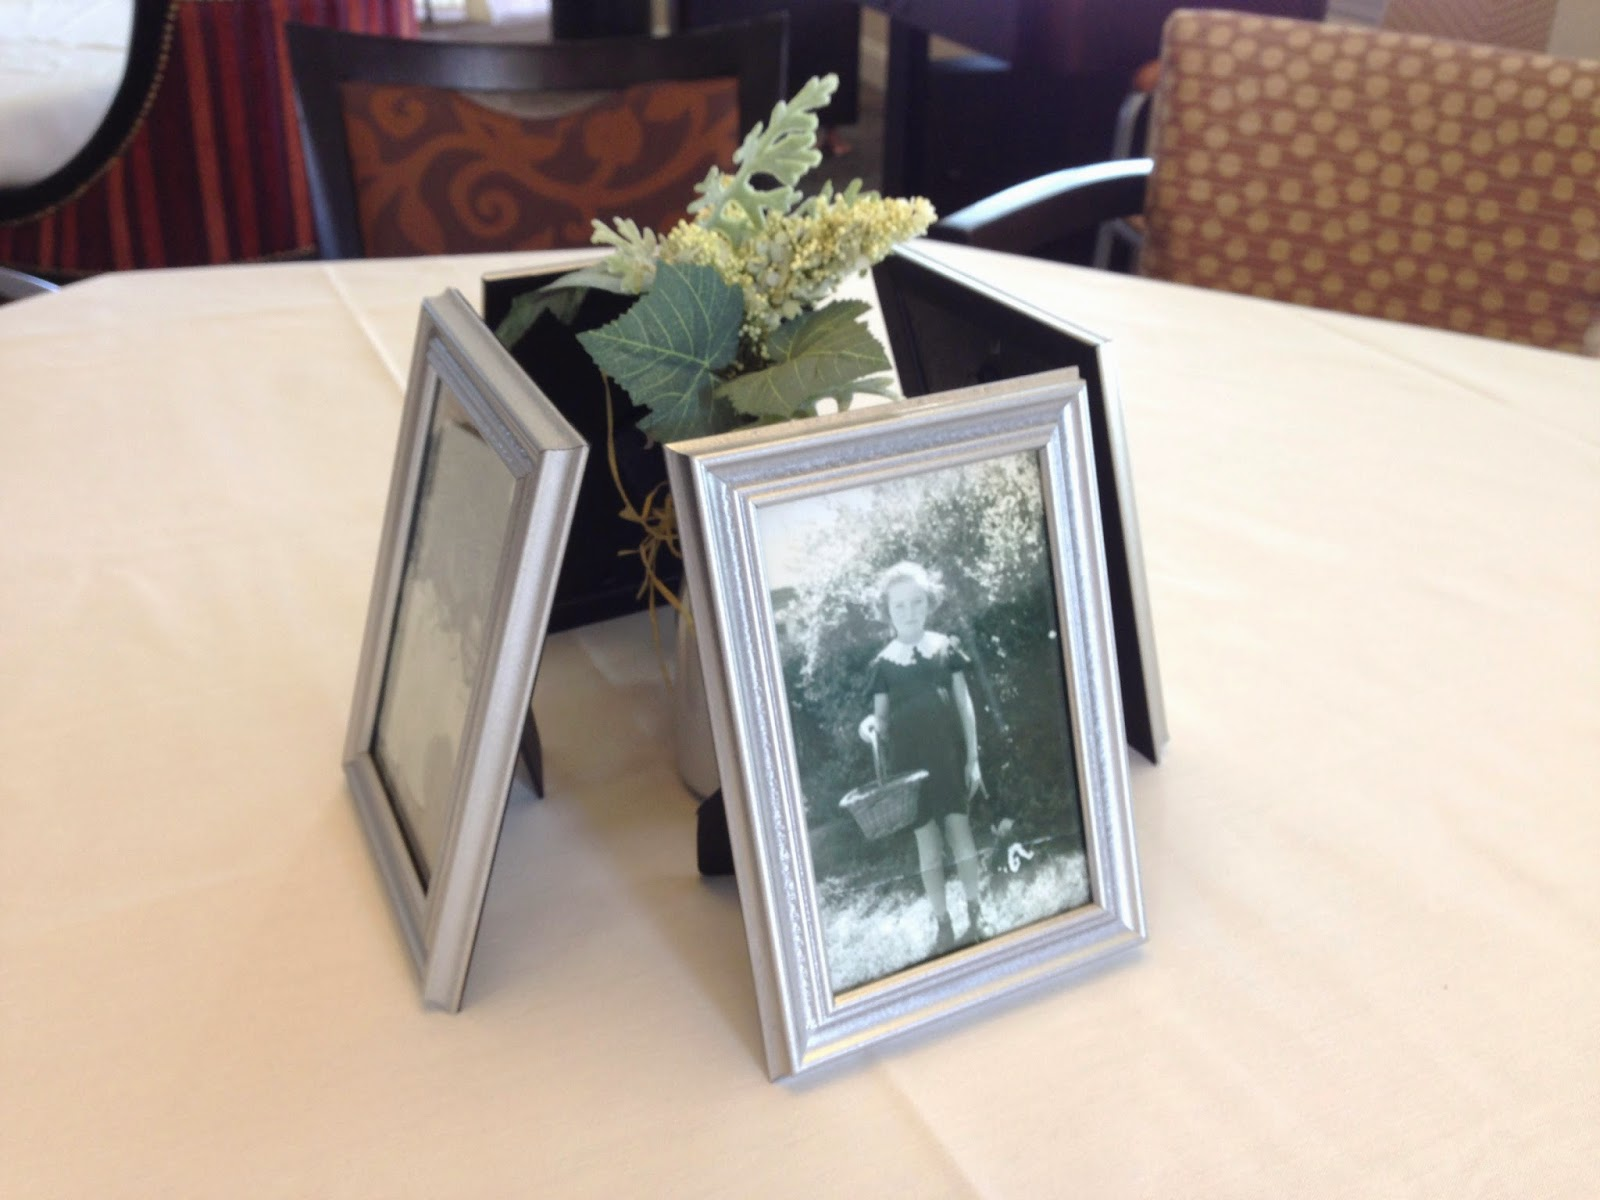 For The Centerpieces I Used Little Vases Filled With Greenery And Placed Four Pictures Of My Mom At Different Stages Throughout Her Life Around